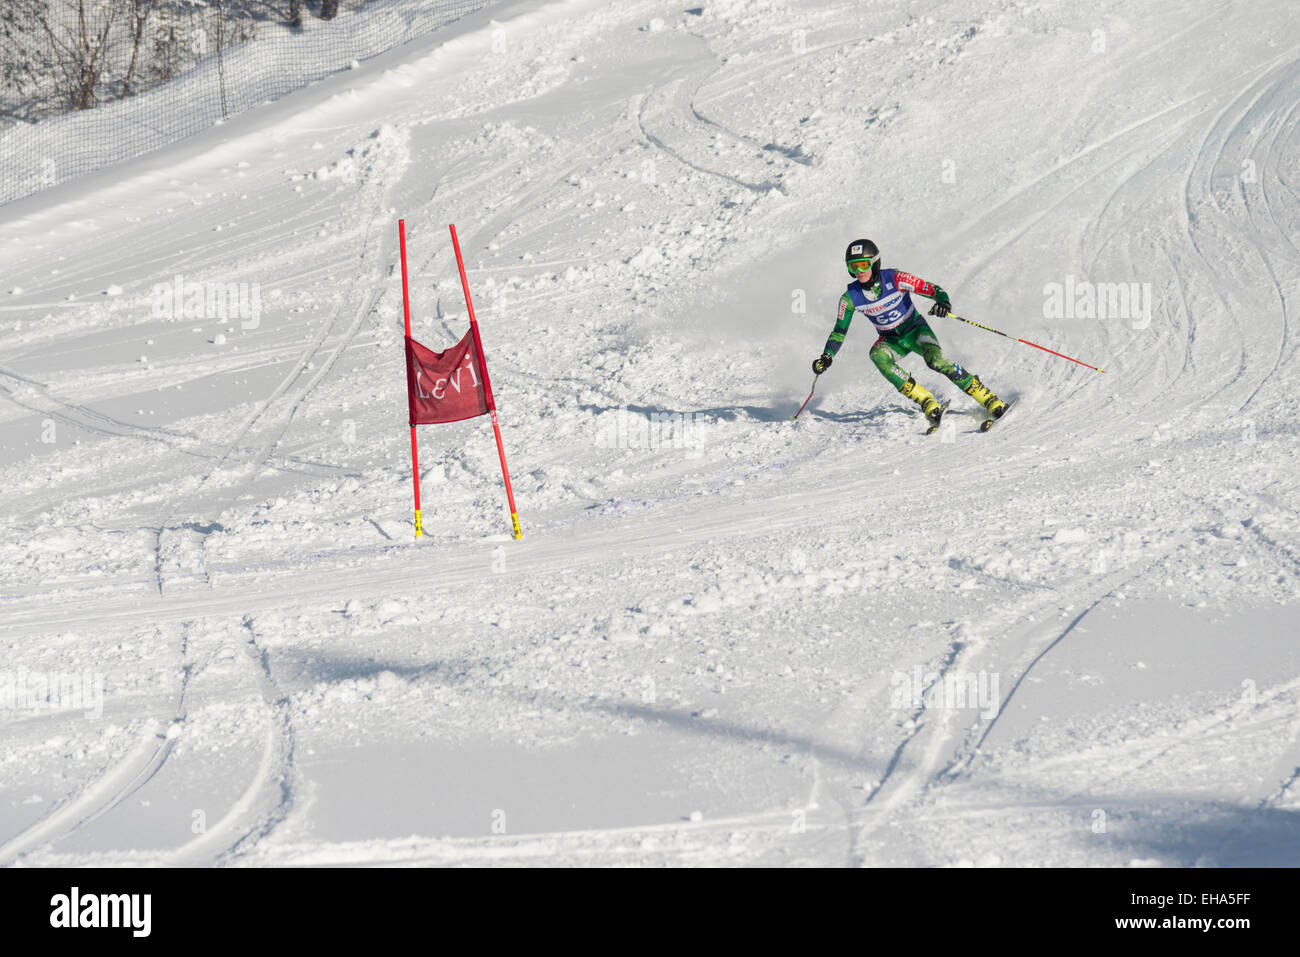 A giant slalom skier racer approaching a gate on a piste at Levi Finland - Stock Image